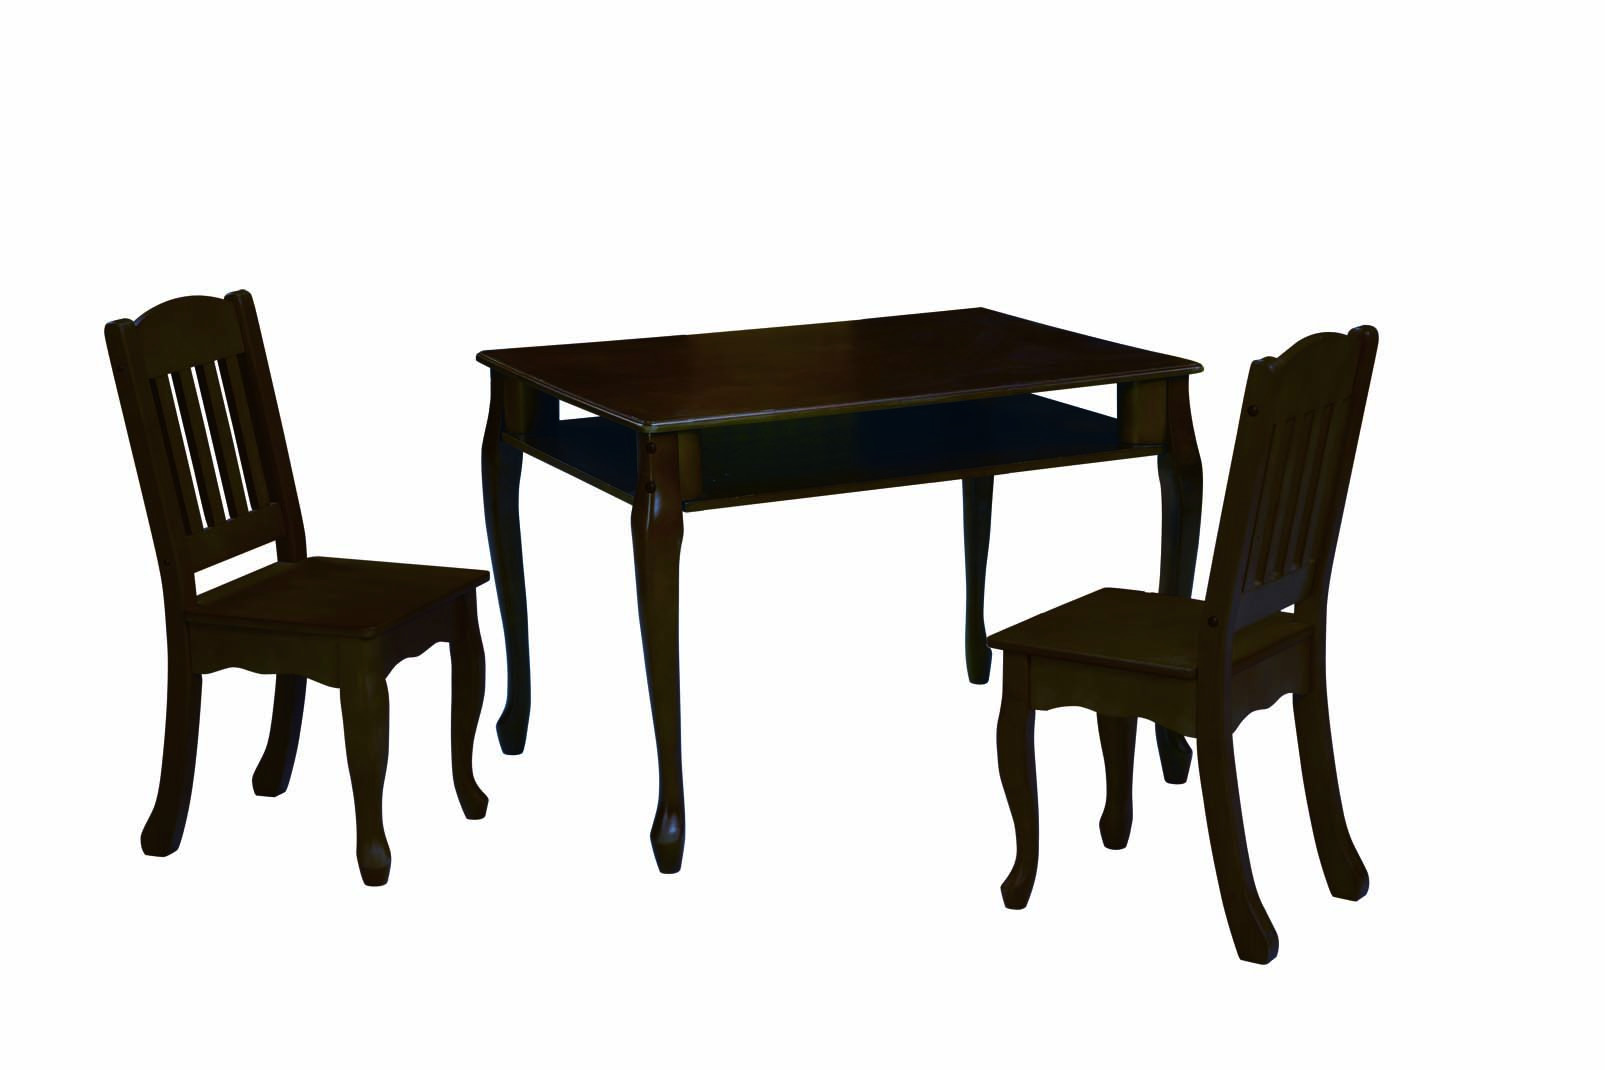 Best ideas about Table And Chair Set . Save or Pin Childrens Table And Chairs Set Now.